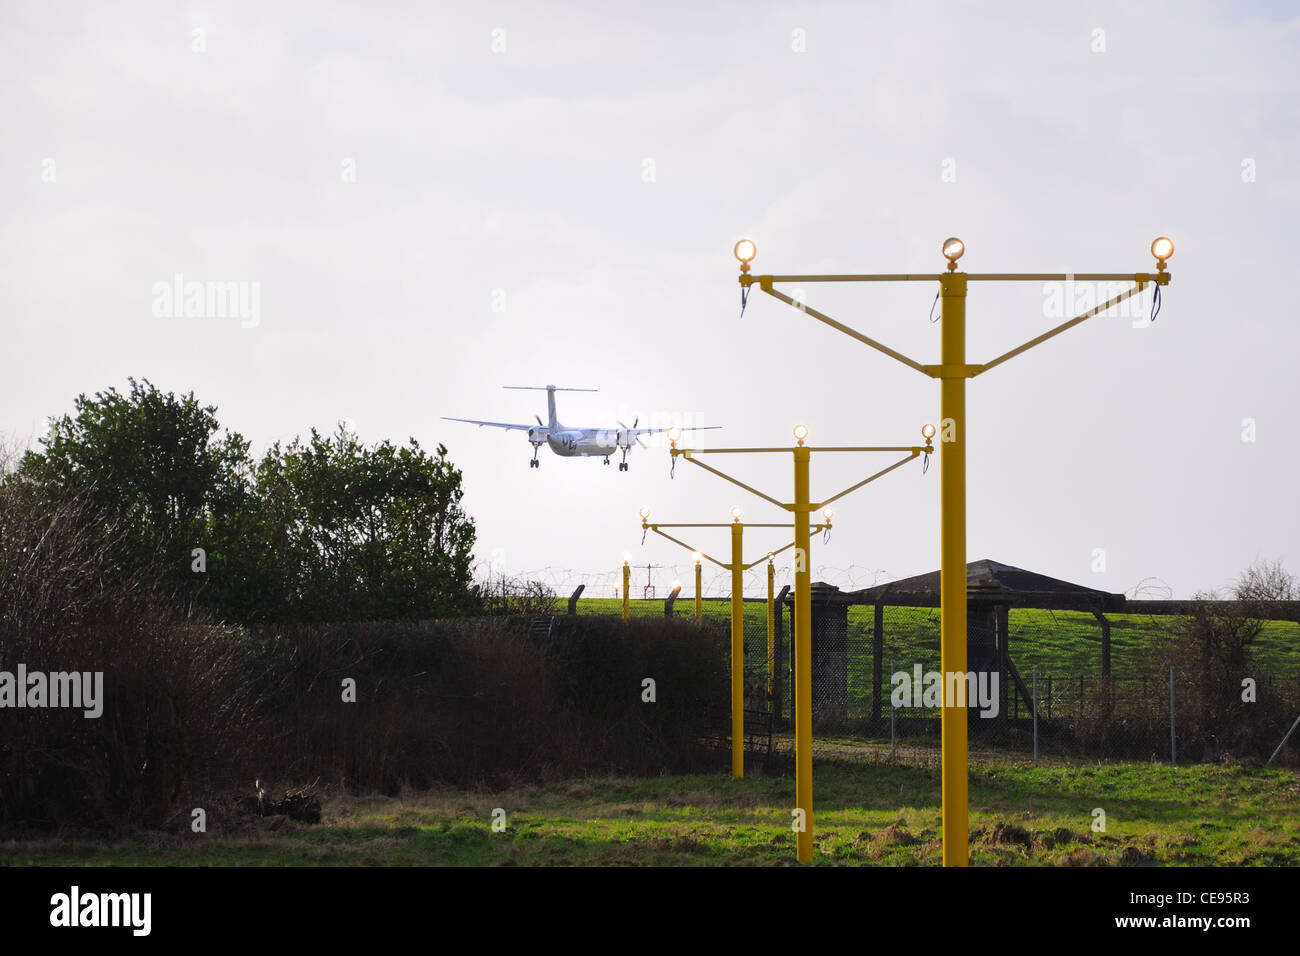 A Plane Tries To Land In A Crosswind At Glasgow International